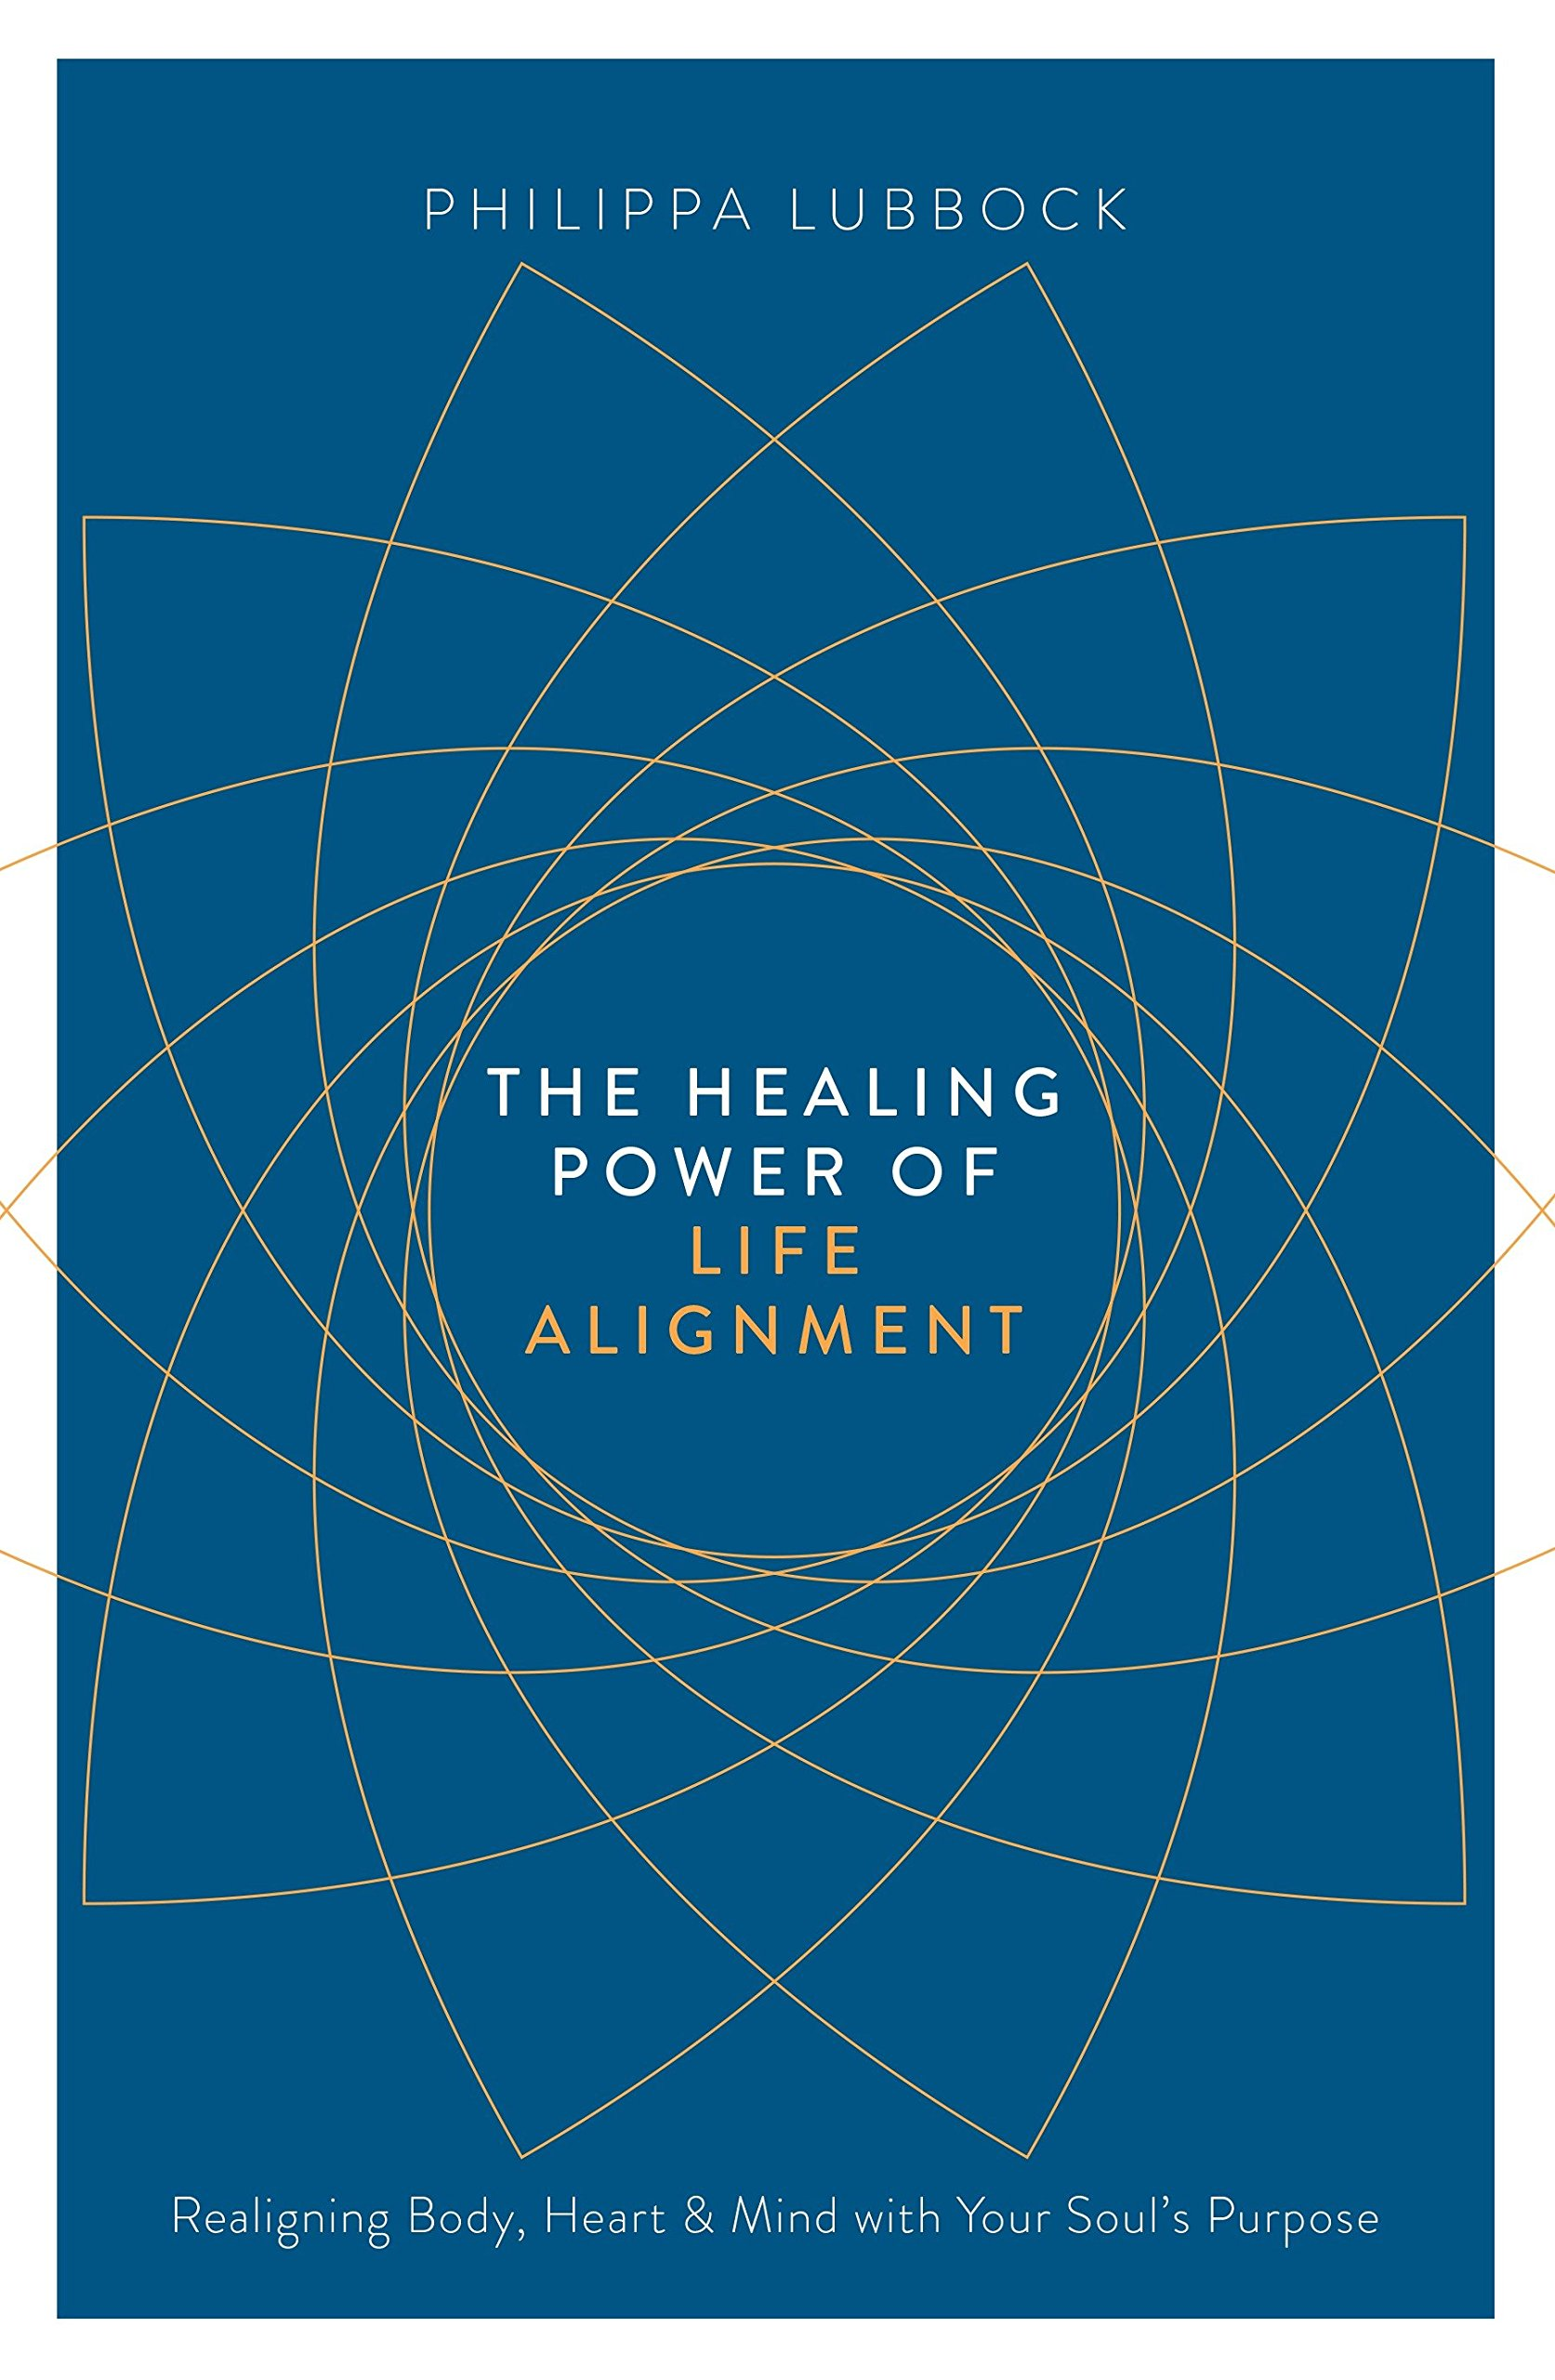 Powers of Two: The Creative and Healing Energy of a Pair forecast